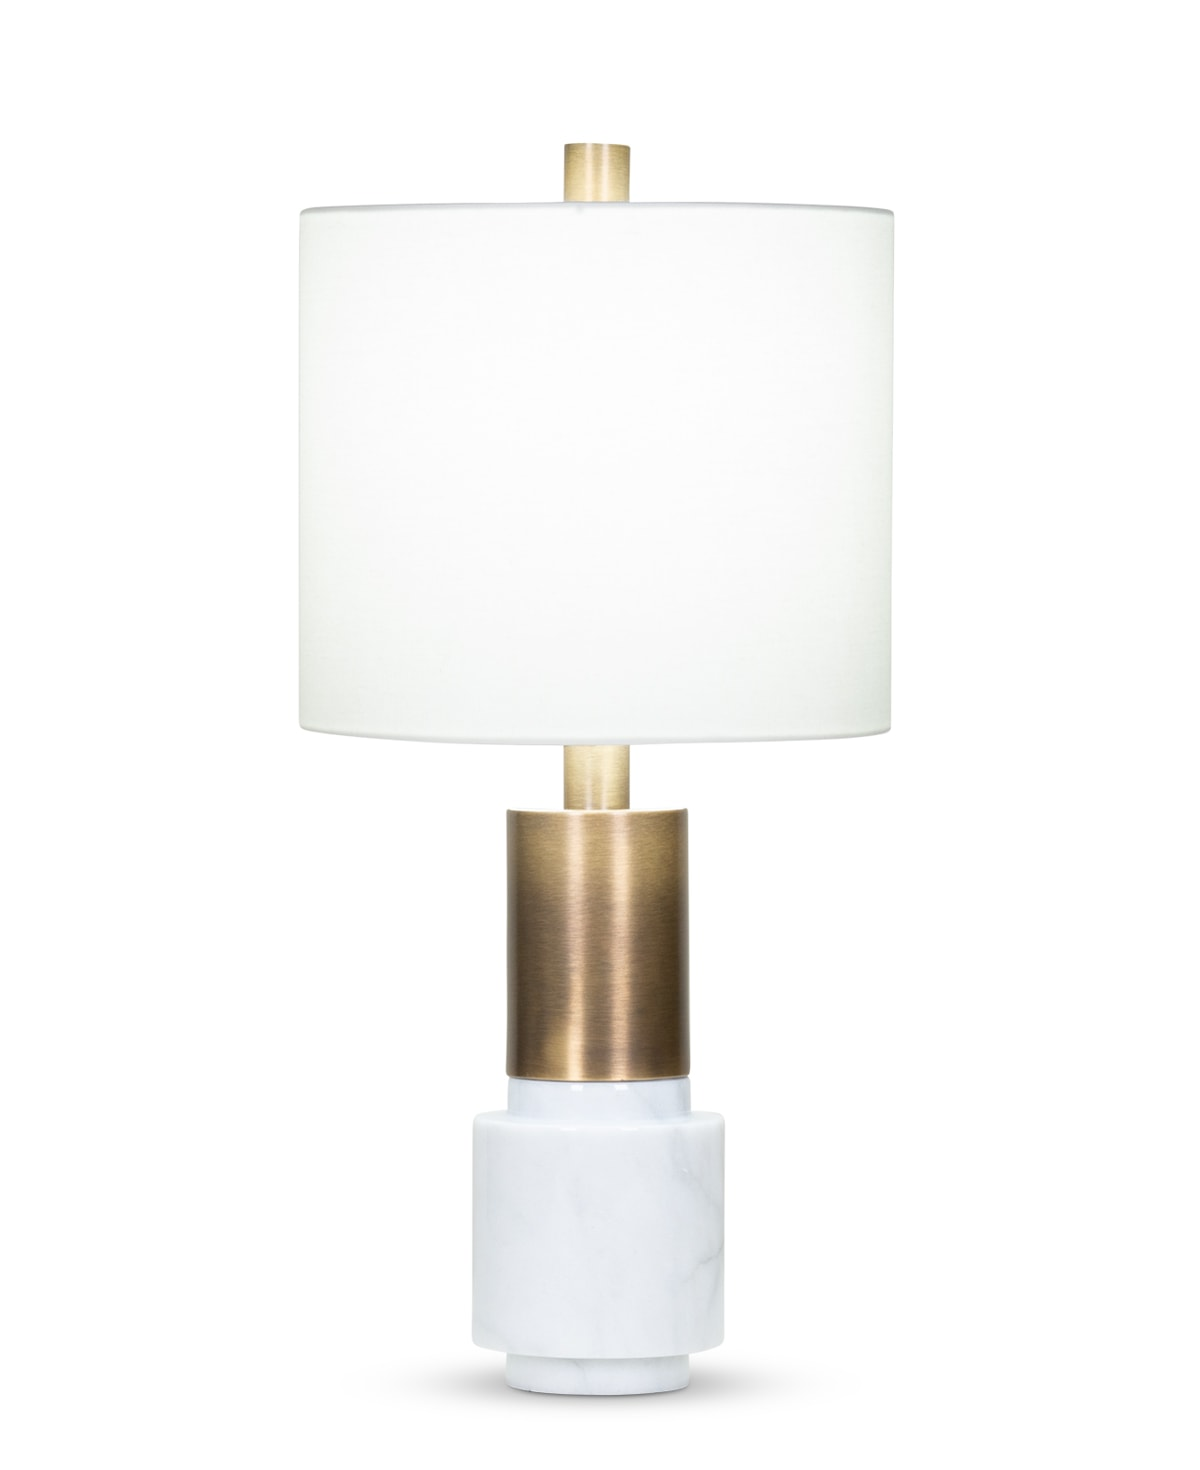 FlowDecor Cordelia Table Lamp in white marble and metal with antique brass finish and off-white linen drum shade (# 4016)